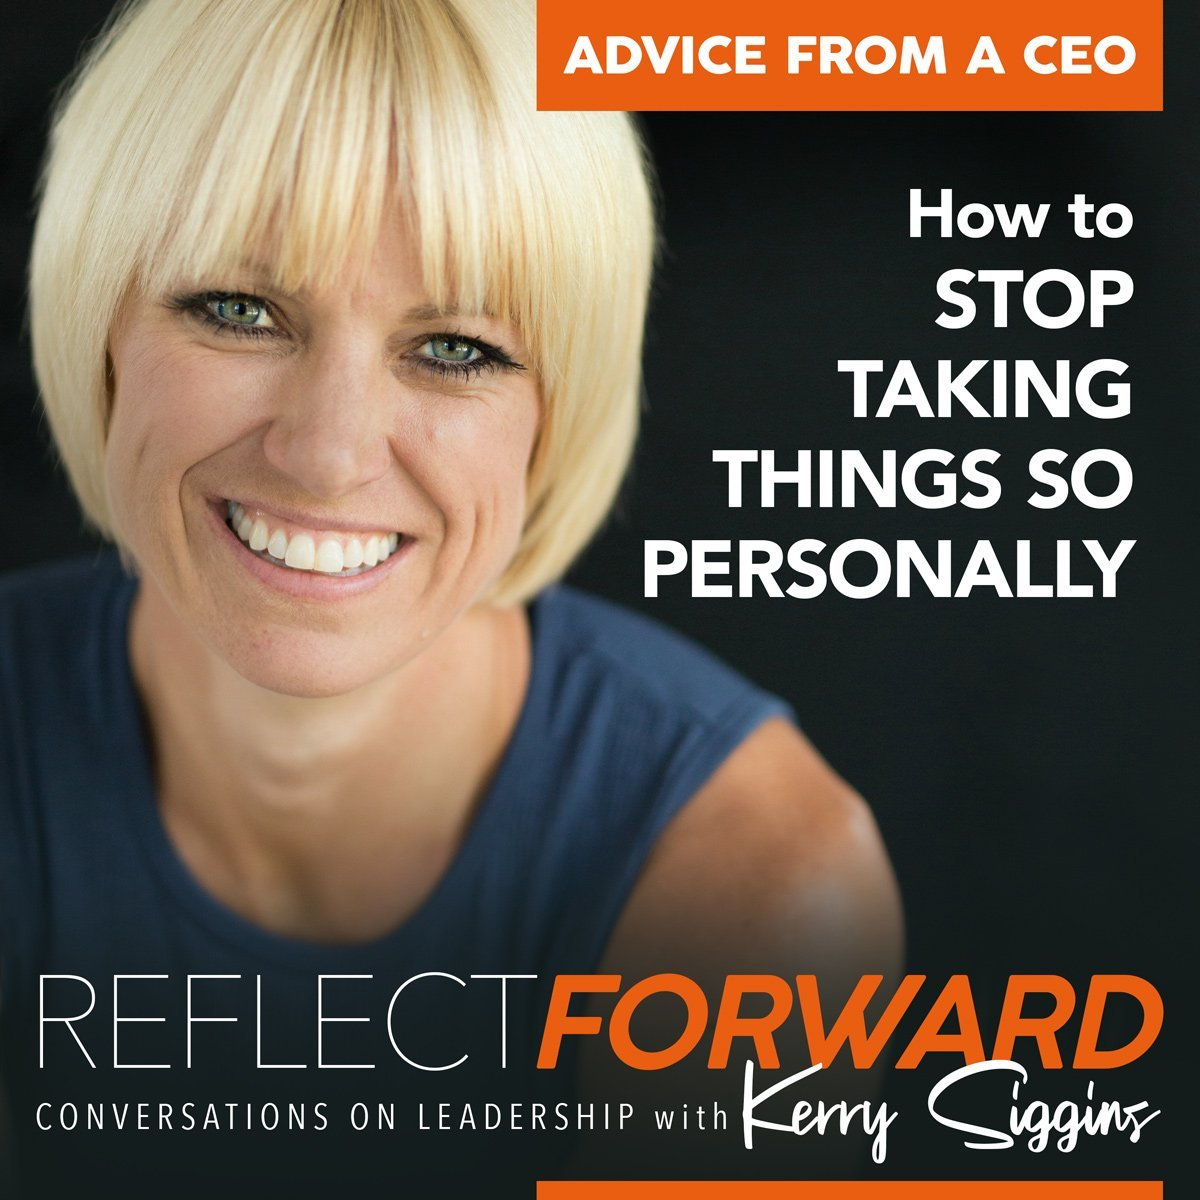 EP 19: Advice From a CEO: Stop Taking Things So Personally